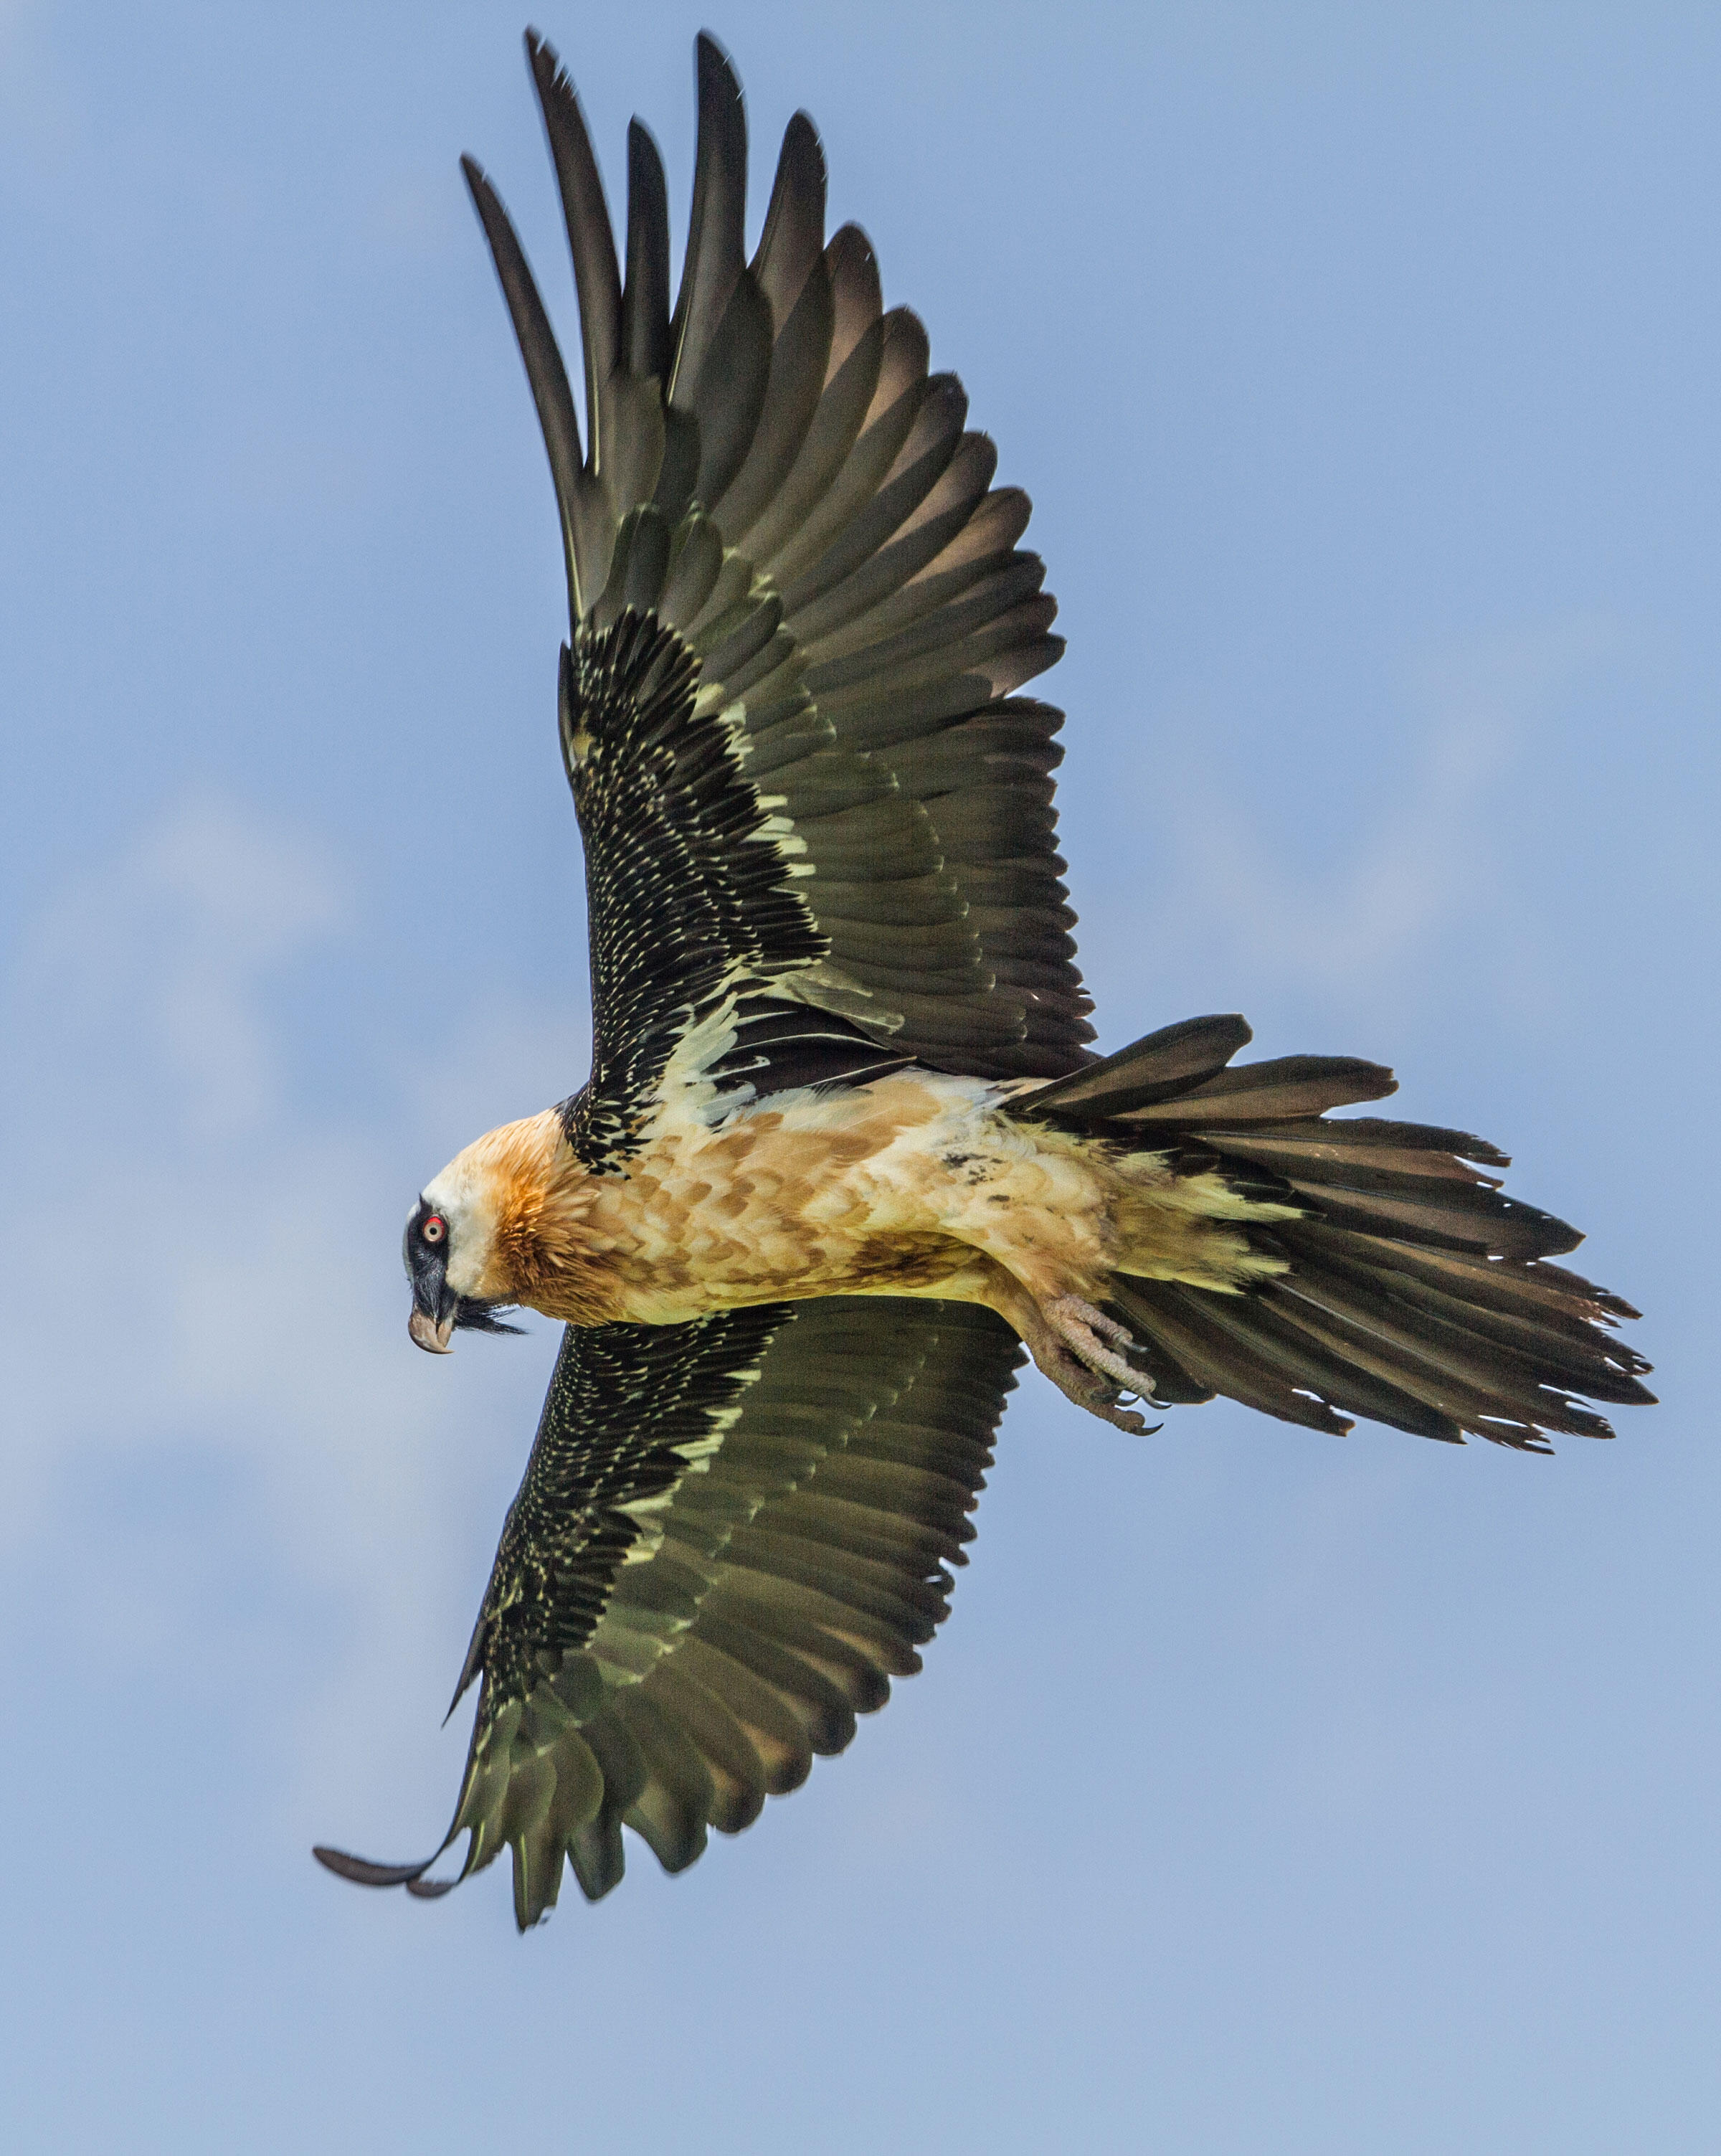 An adult Bearded Vulture—the world's only vertebrate osteophage (bone-eating specialist)—in Ethiopia. Evan R. Buechley